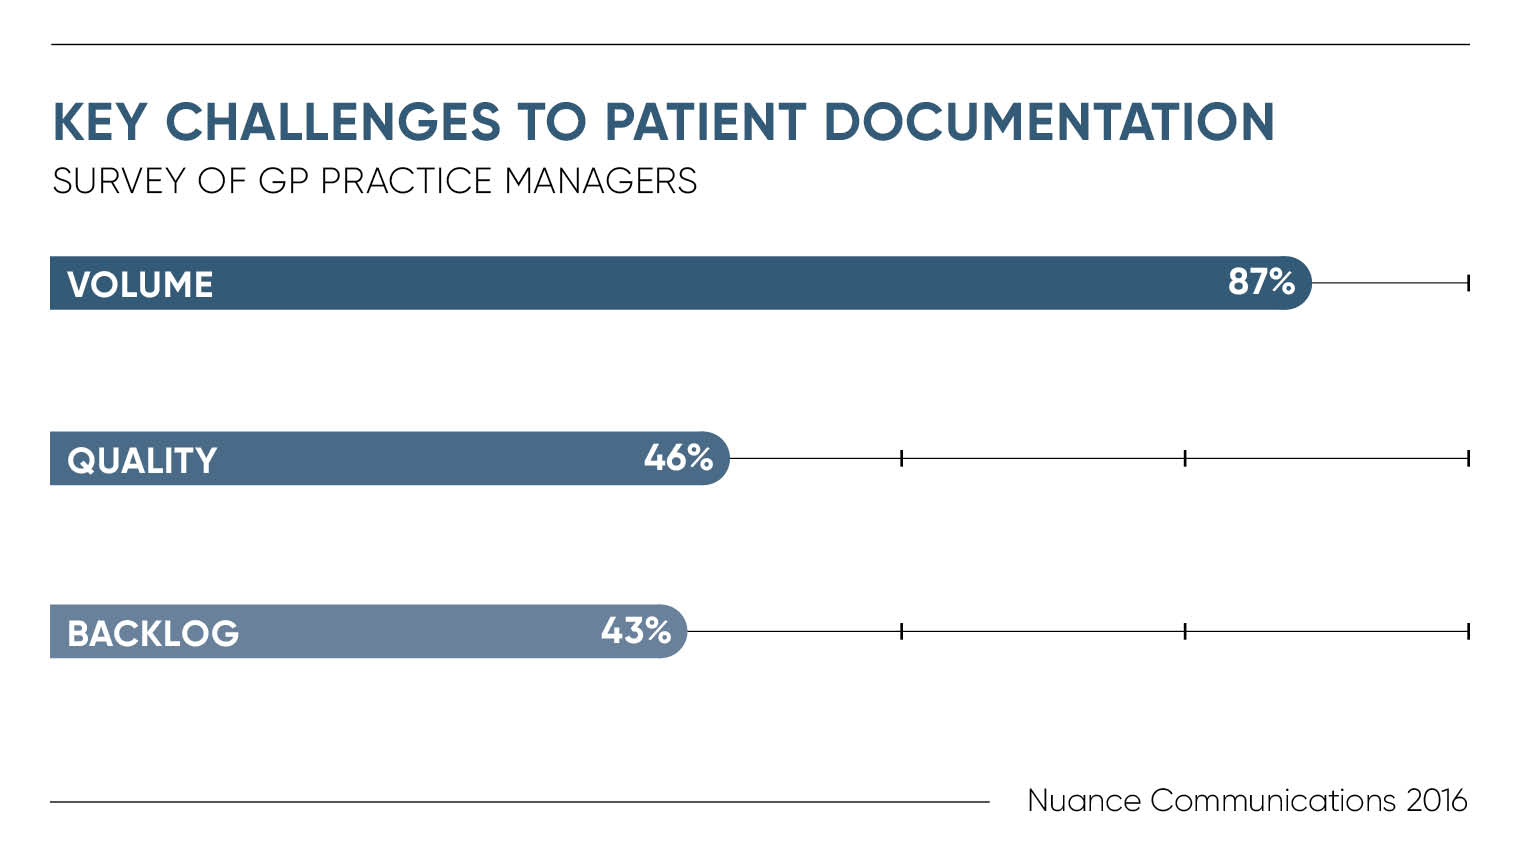 Key challenges to patient documentation infographic